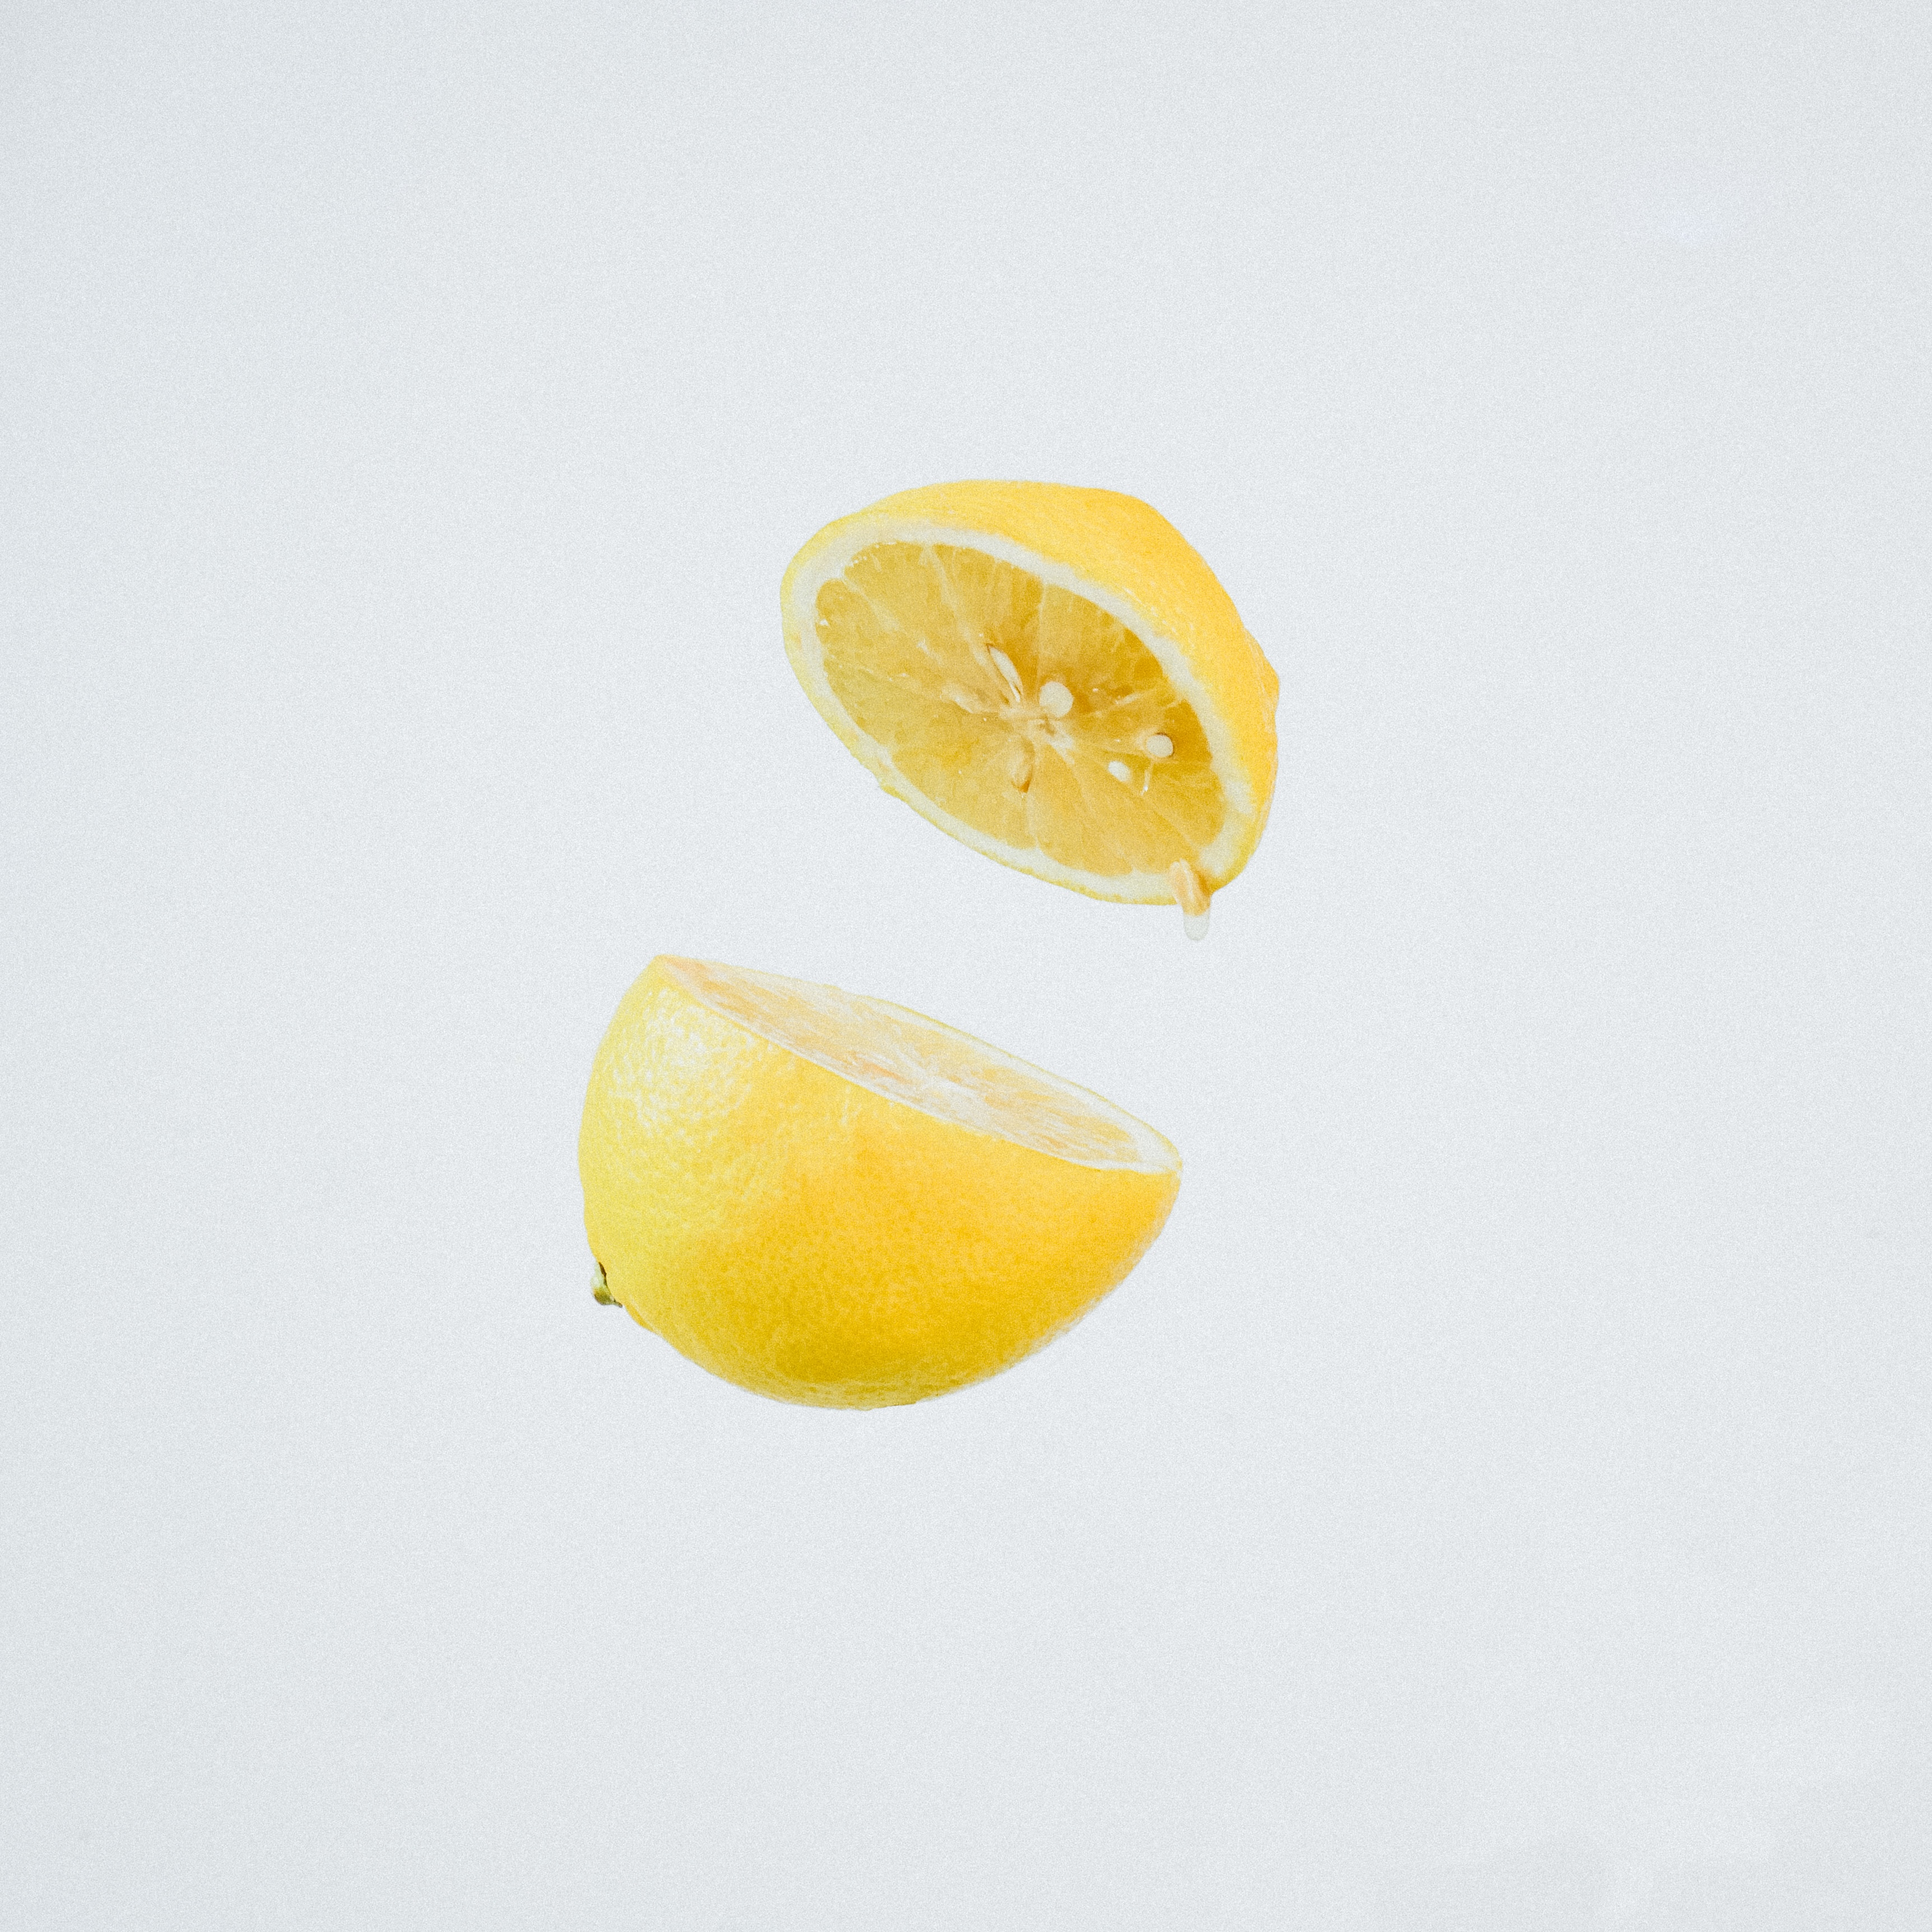 A lemon cut in half and suspended mid-air